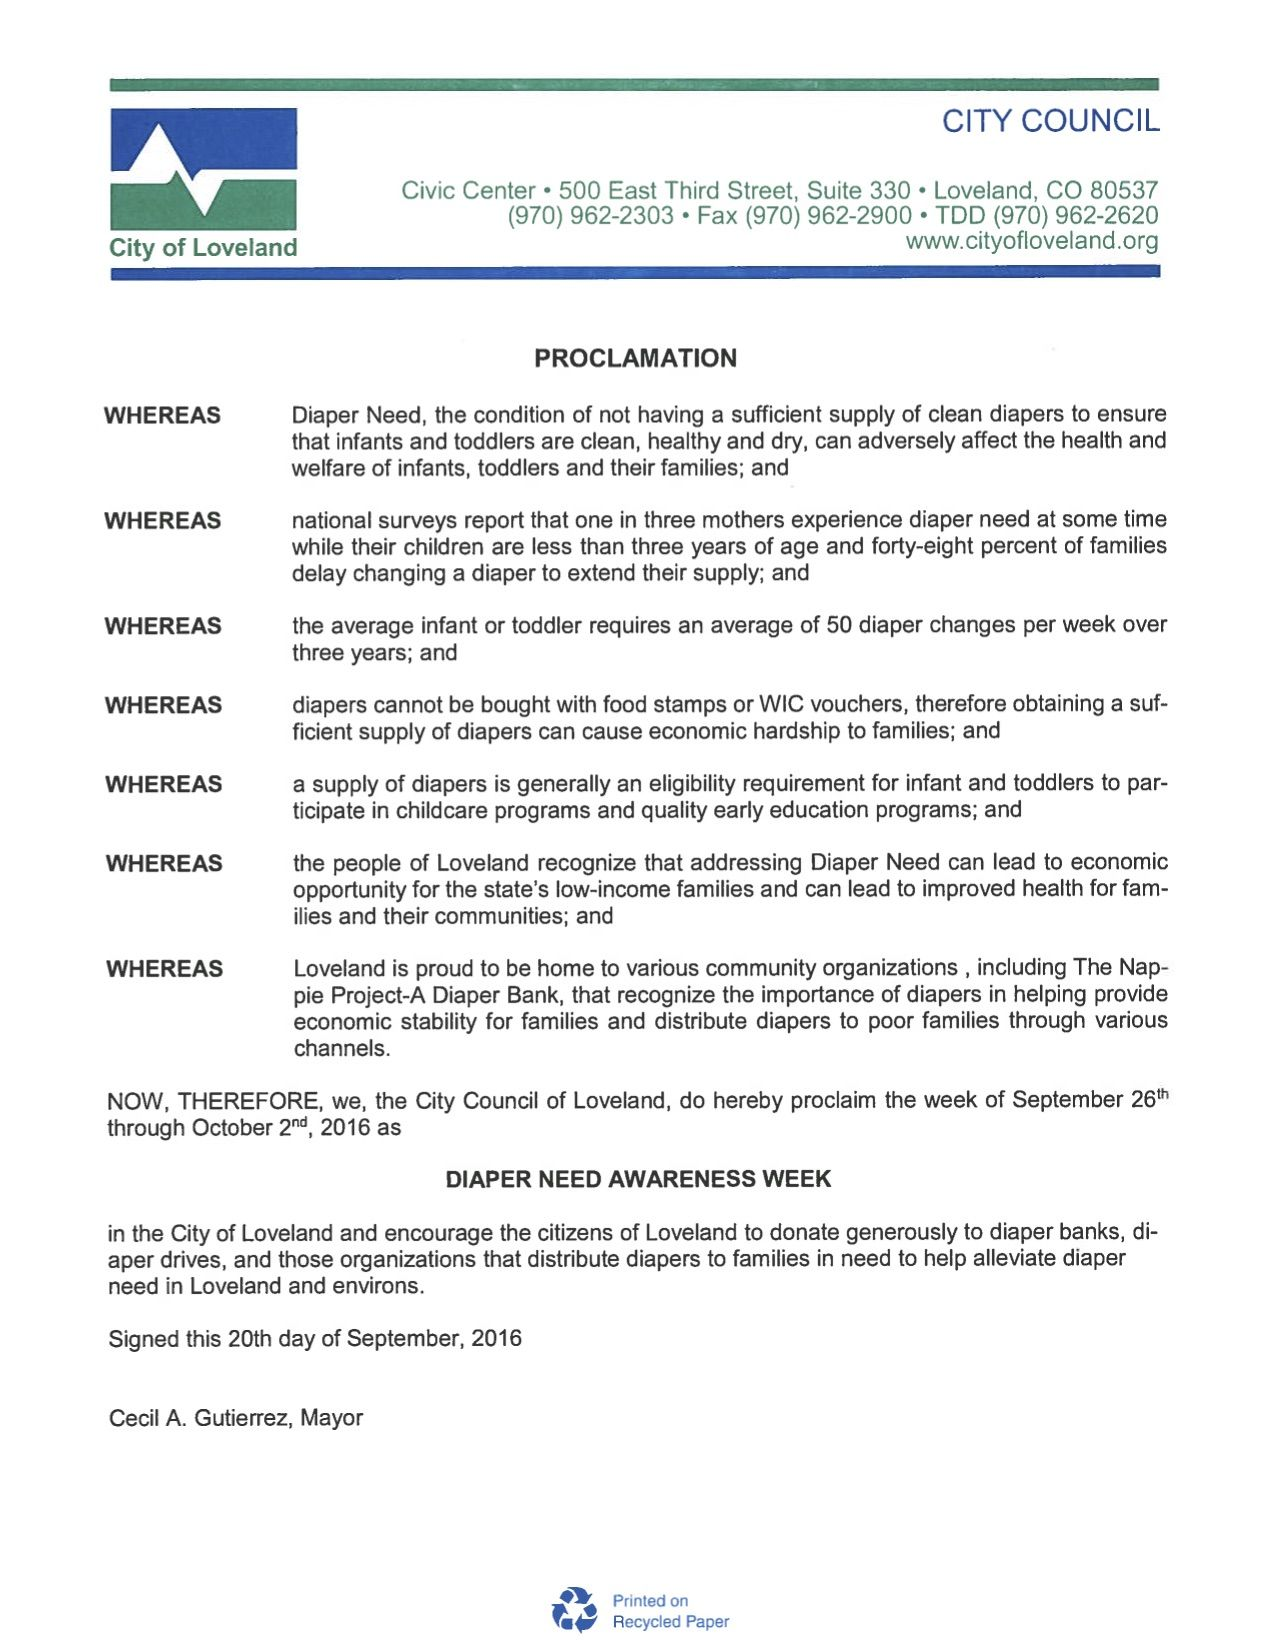 Pin on 2016 diaper need awareness week proclamations